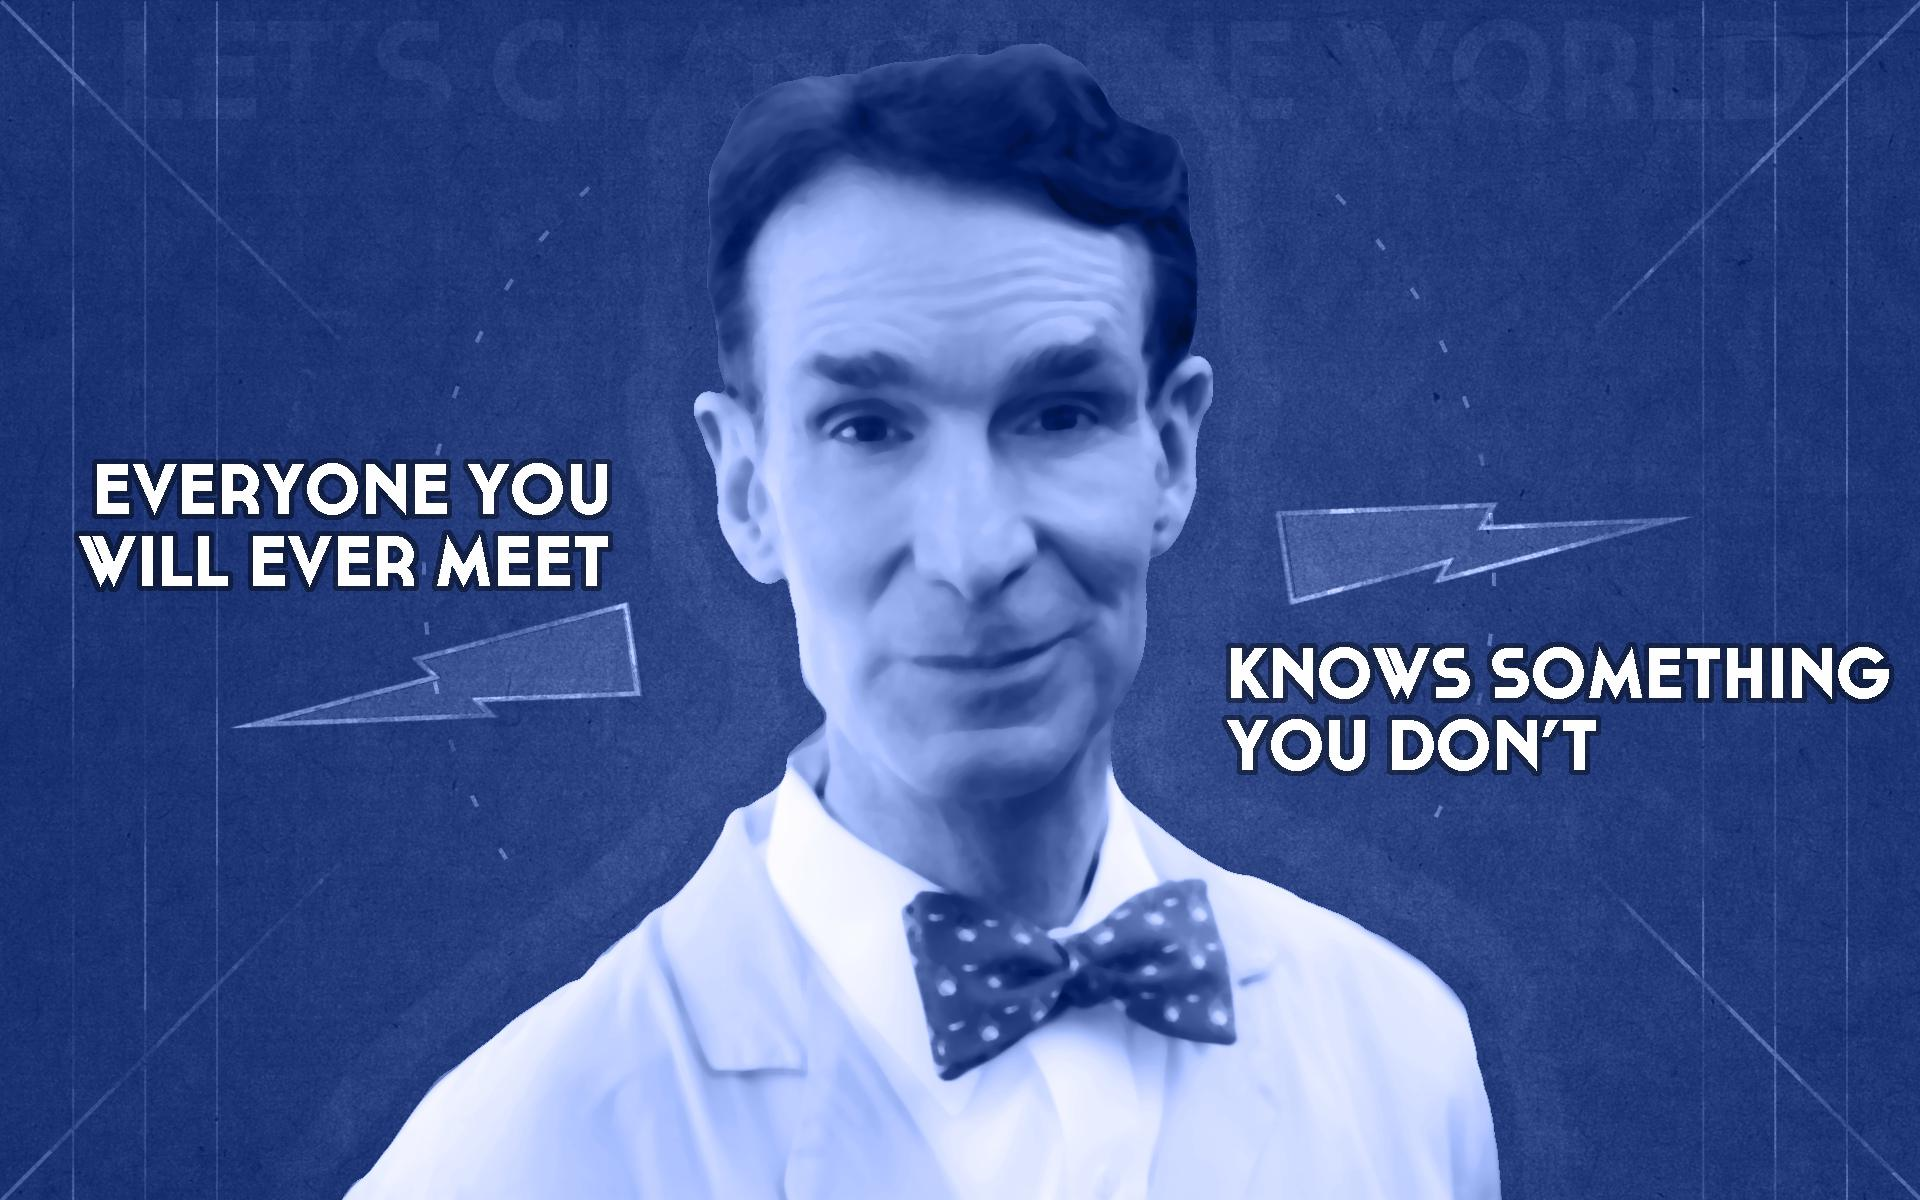 Everyone you ever meet knows something you don't - Bill Nye